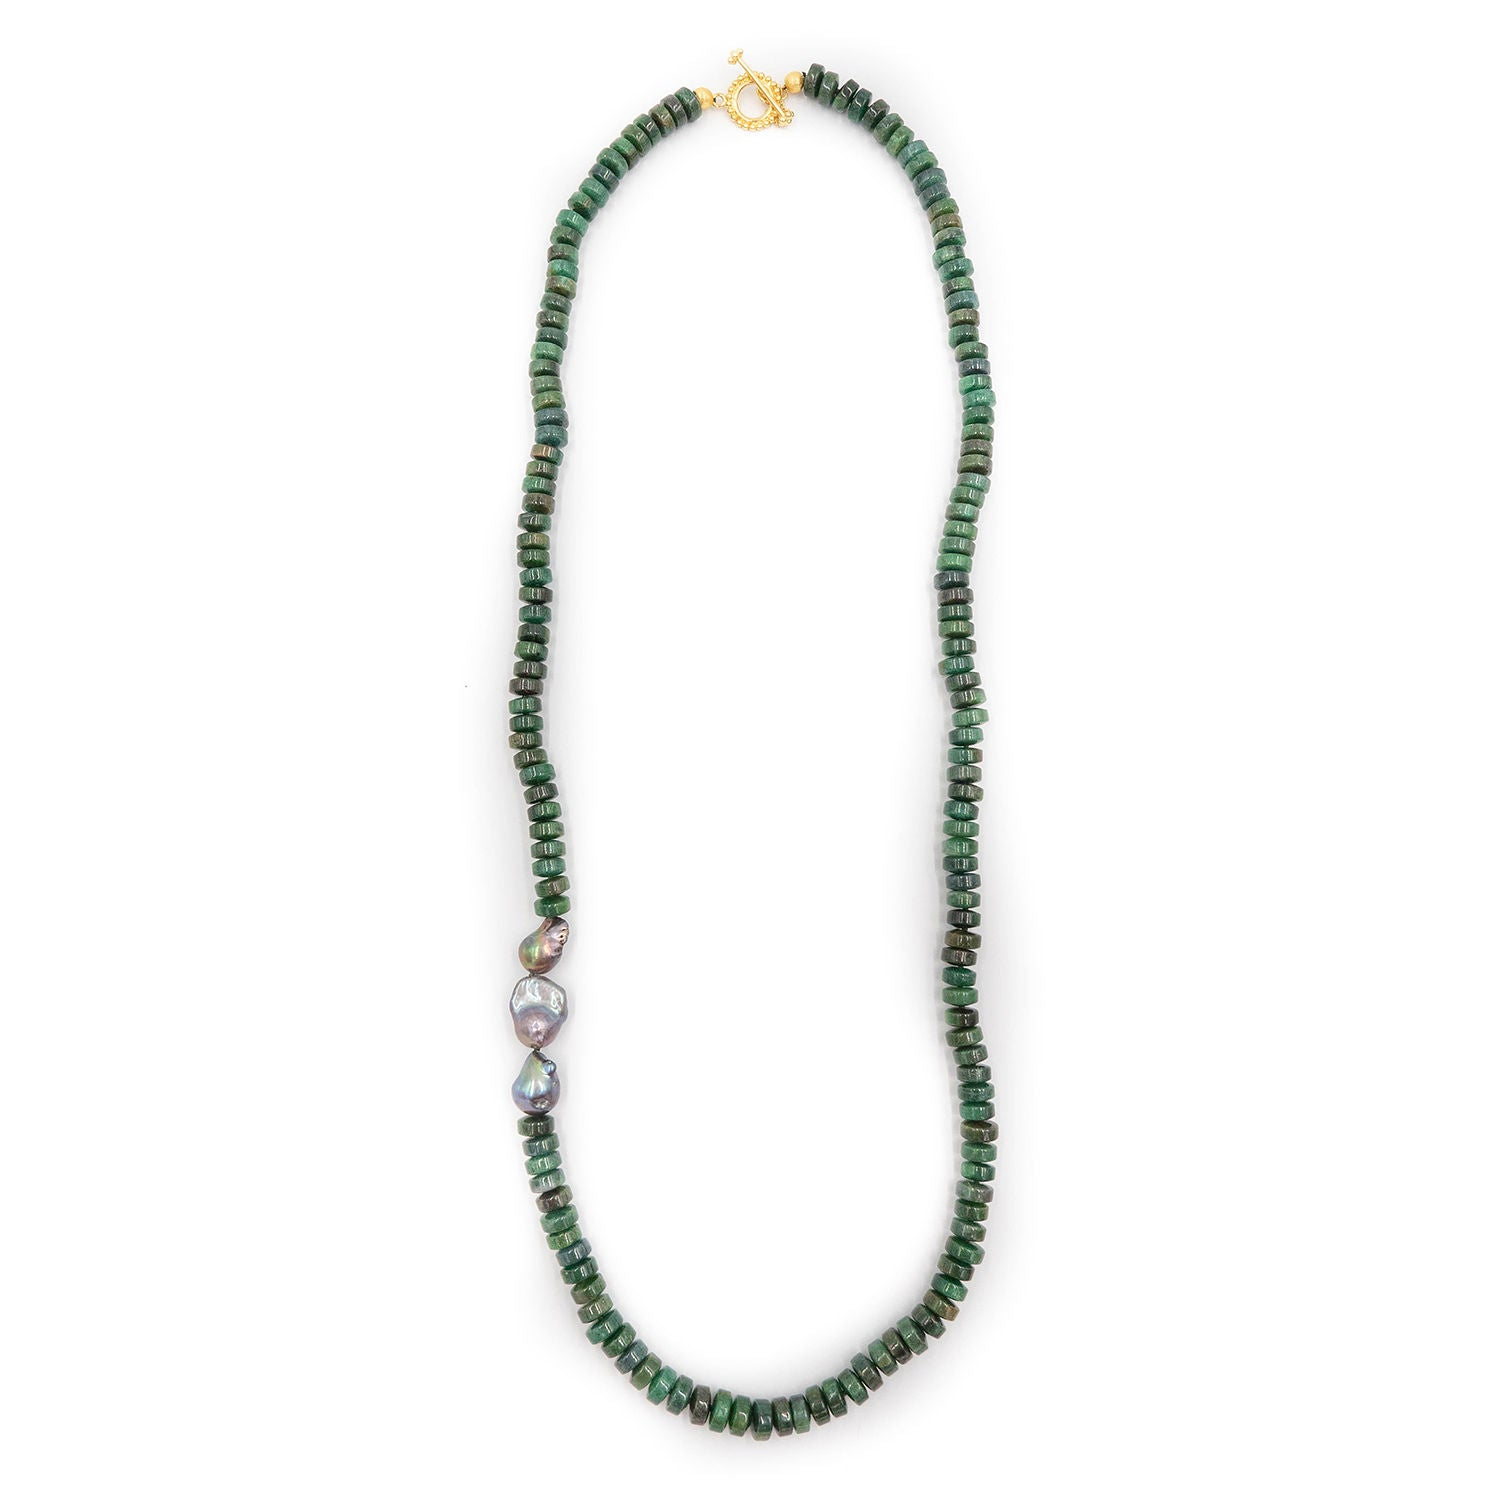 Brentwood Necklace, Emerald Green